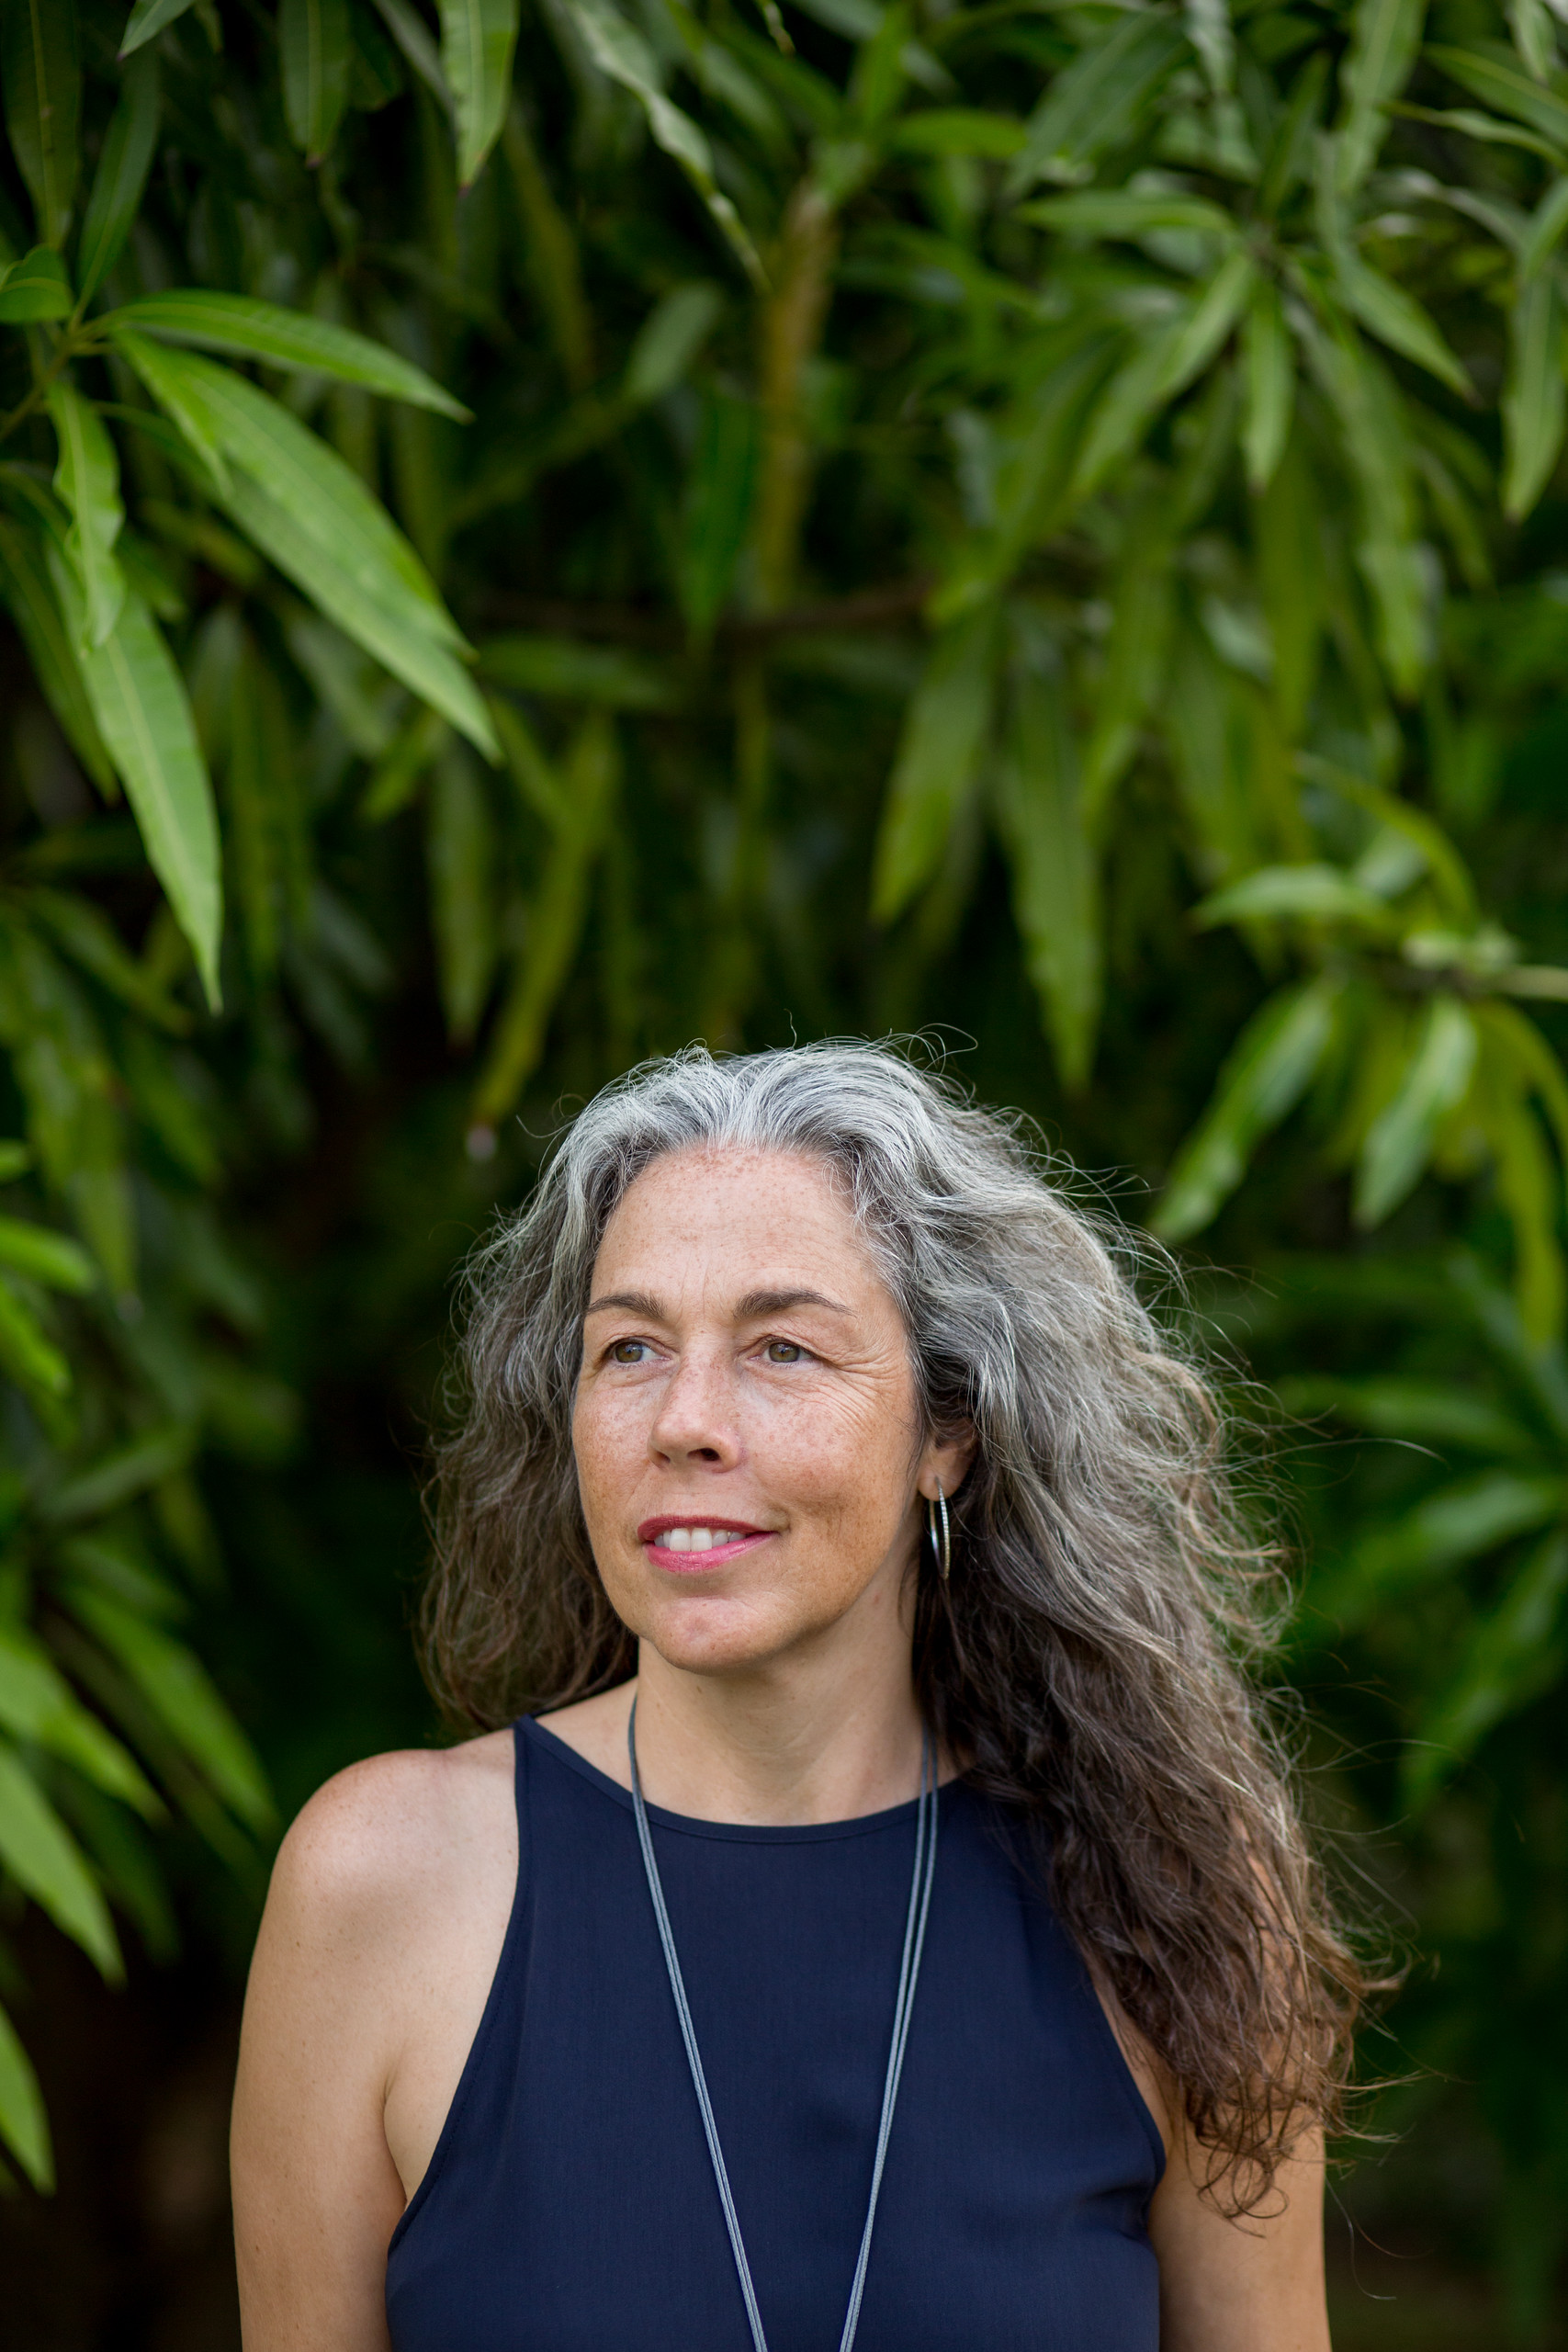 Dr. Josée Ishwari Marcoux, AyD  Dr. Marcoux is the owner of Svasti, Mind Body Soul and practices Ayurveda from Barbados and sees patients internationally. She is also a certified yoga teacher (RYT 200, IAYT), nutritionist holistic, Ayurvedic Massage & Body Therapist (AMBT).